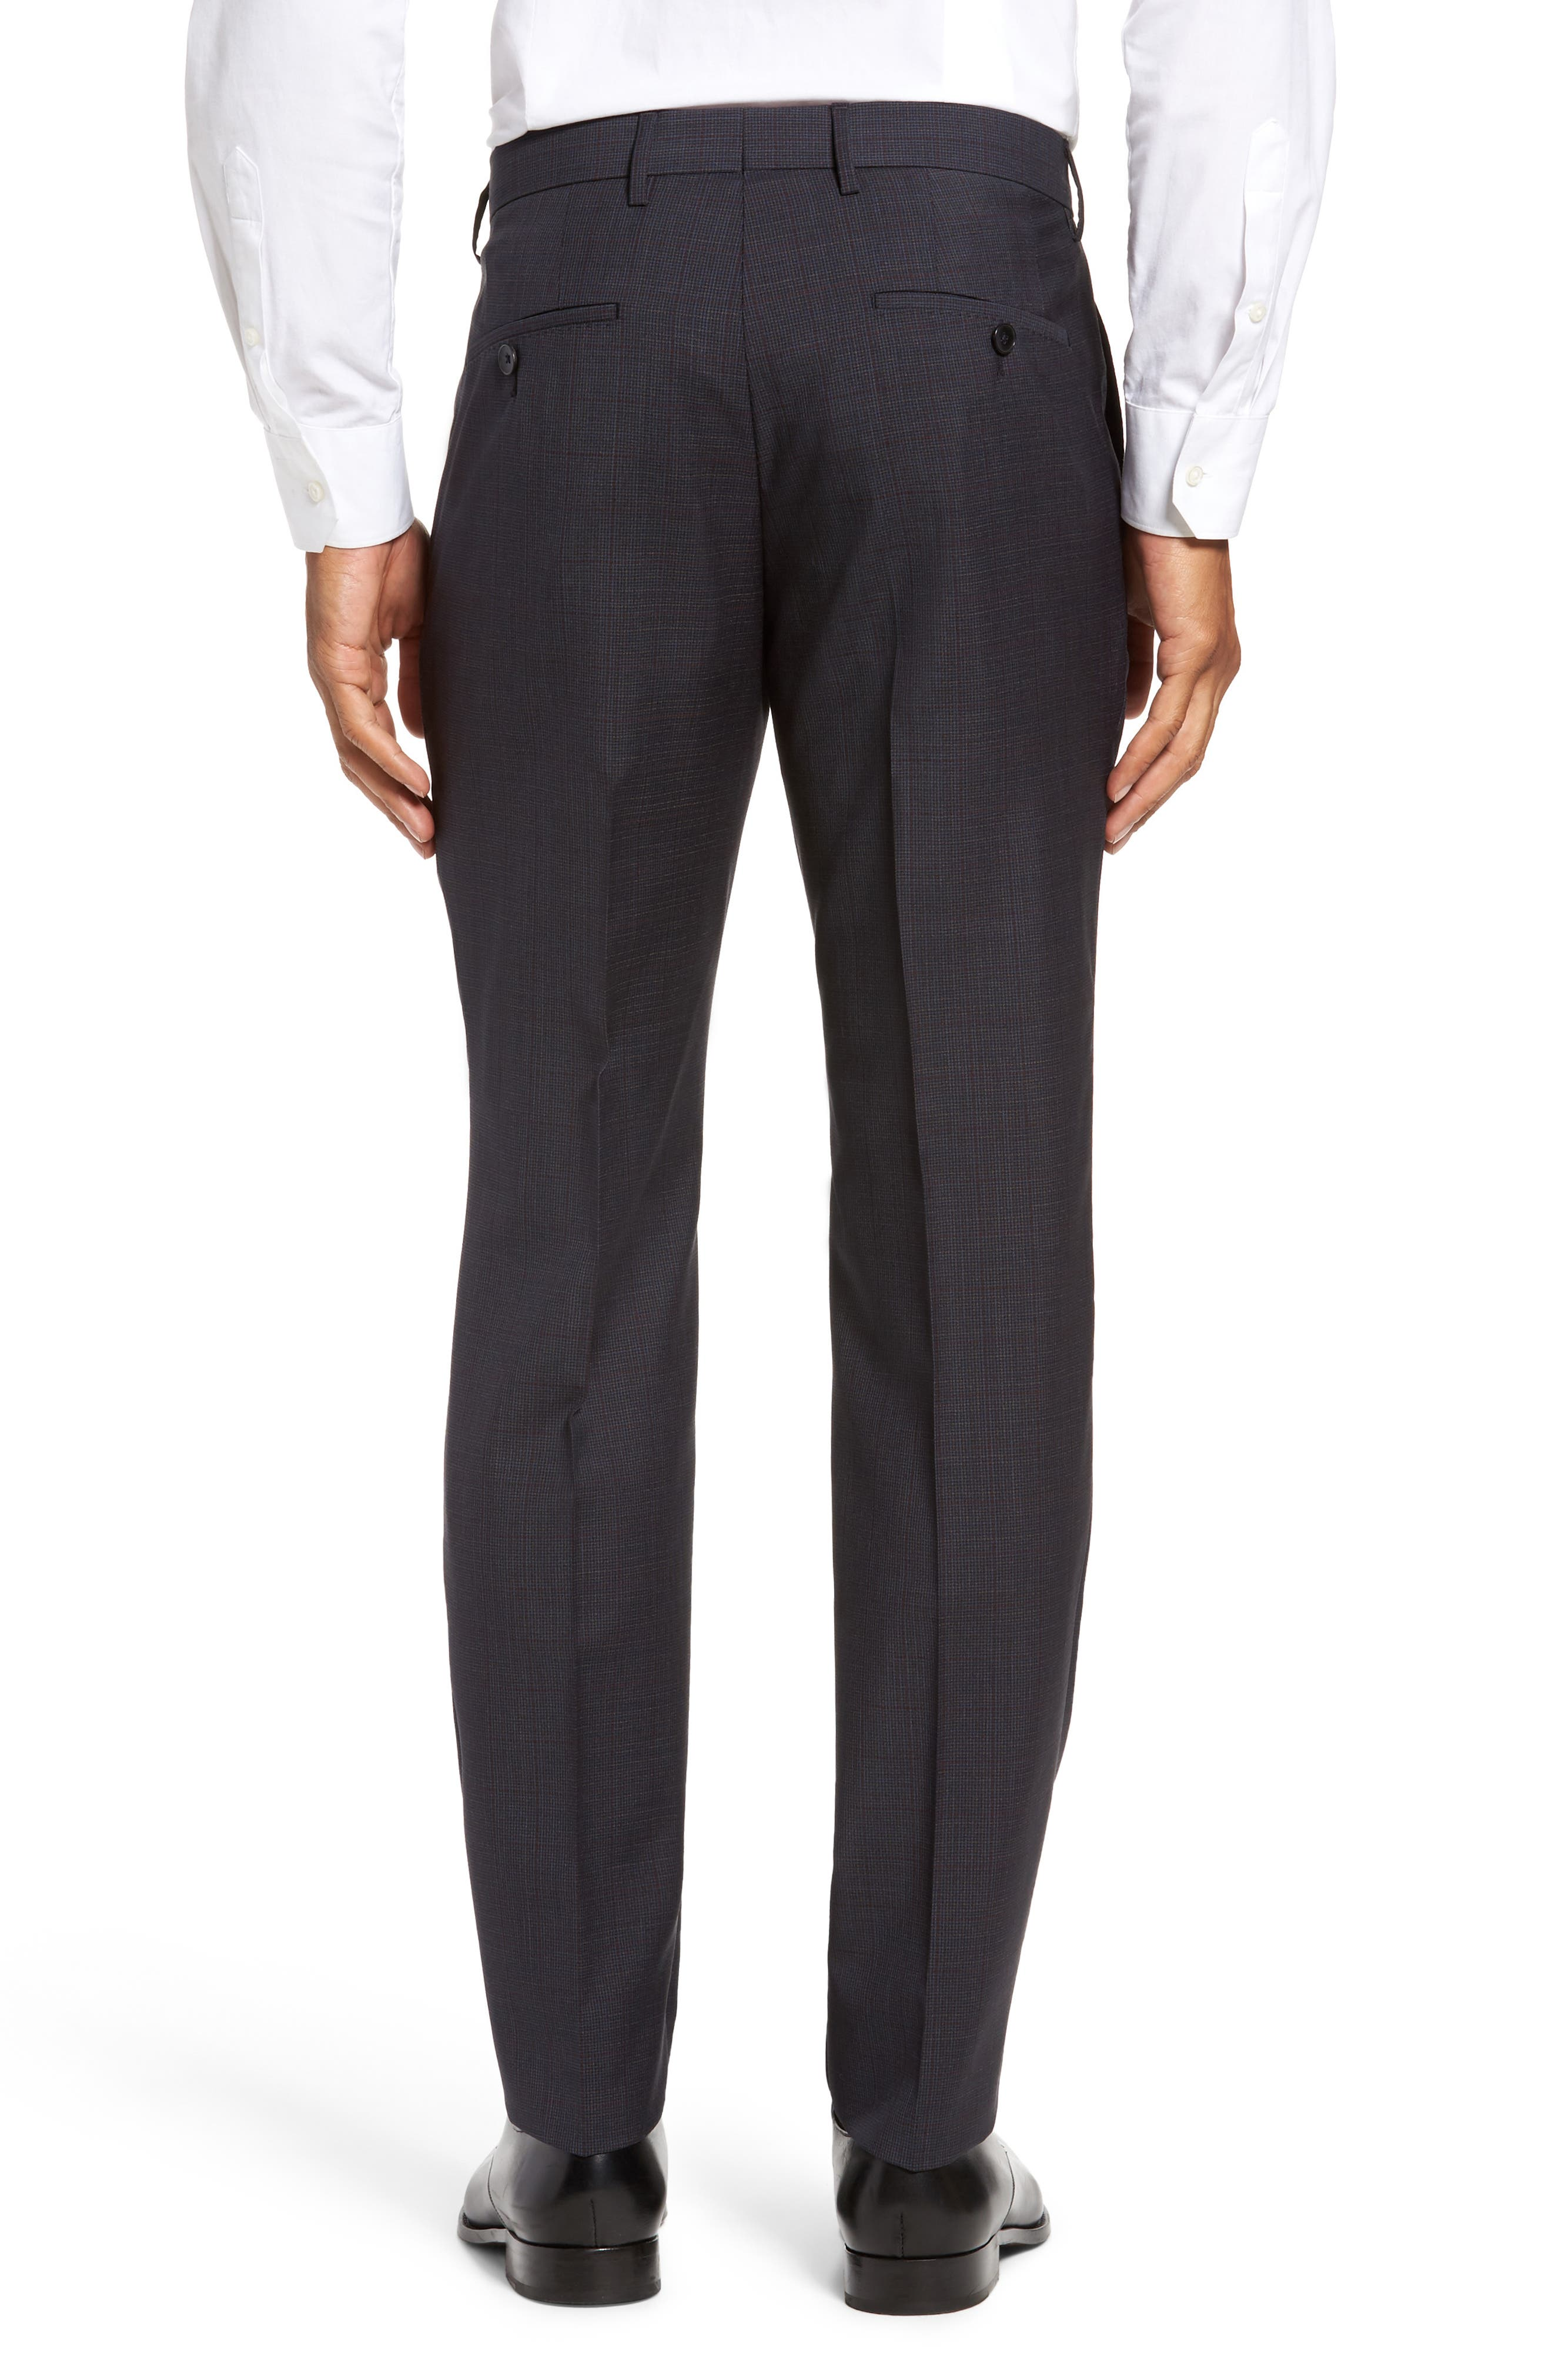 Benso Flat Front Houndstooth Wool Trousers,                             Alternate thumbnail 3, color,                             410